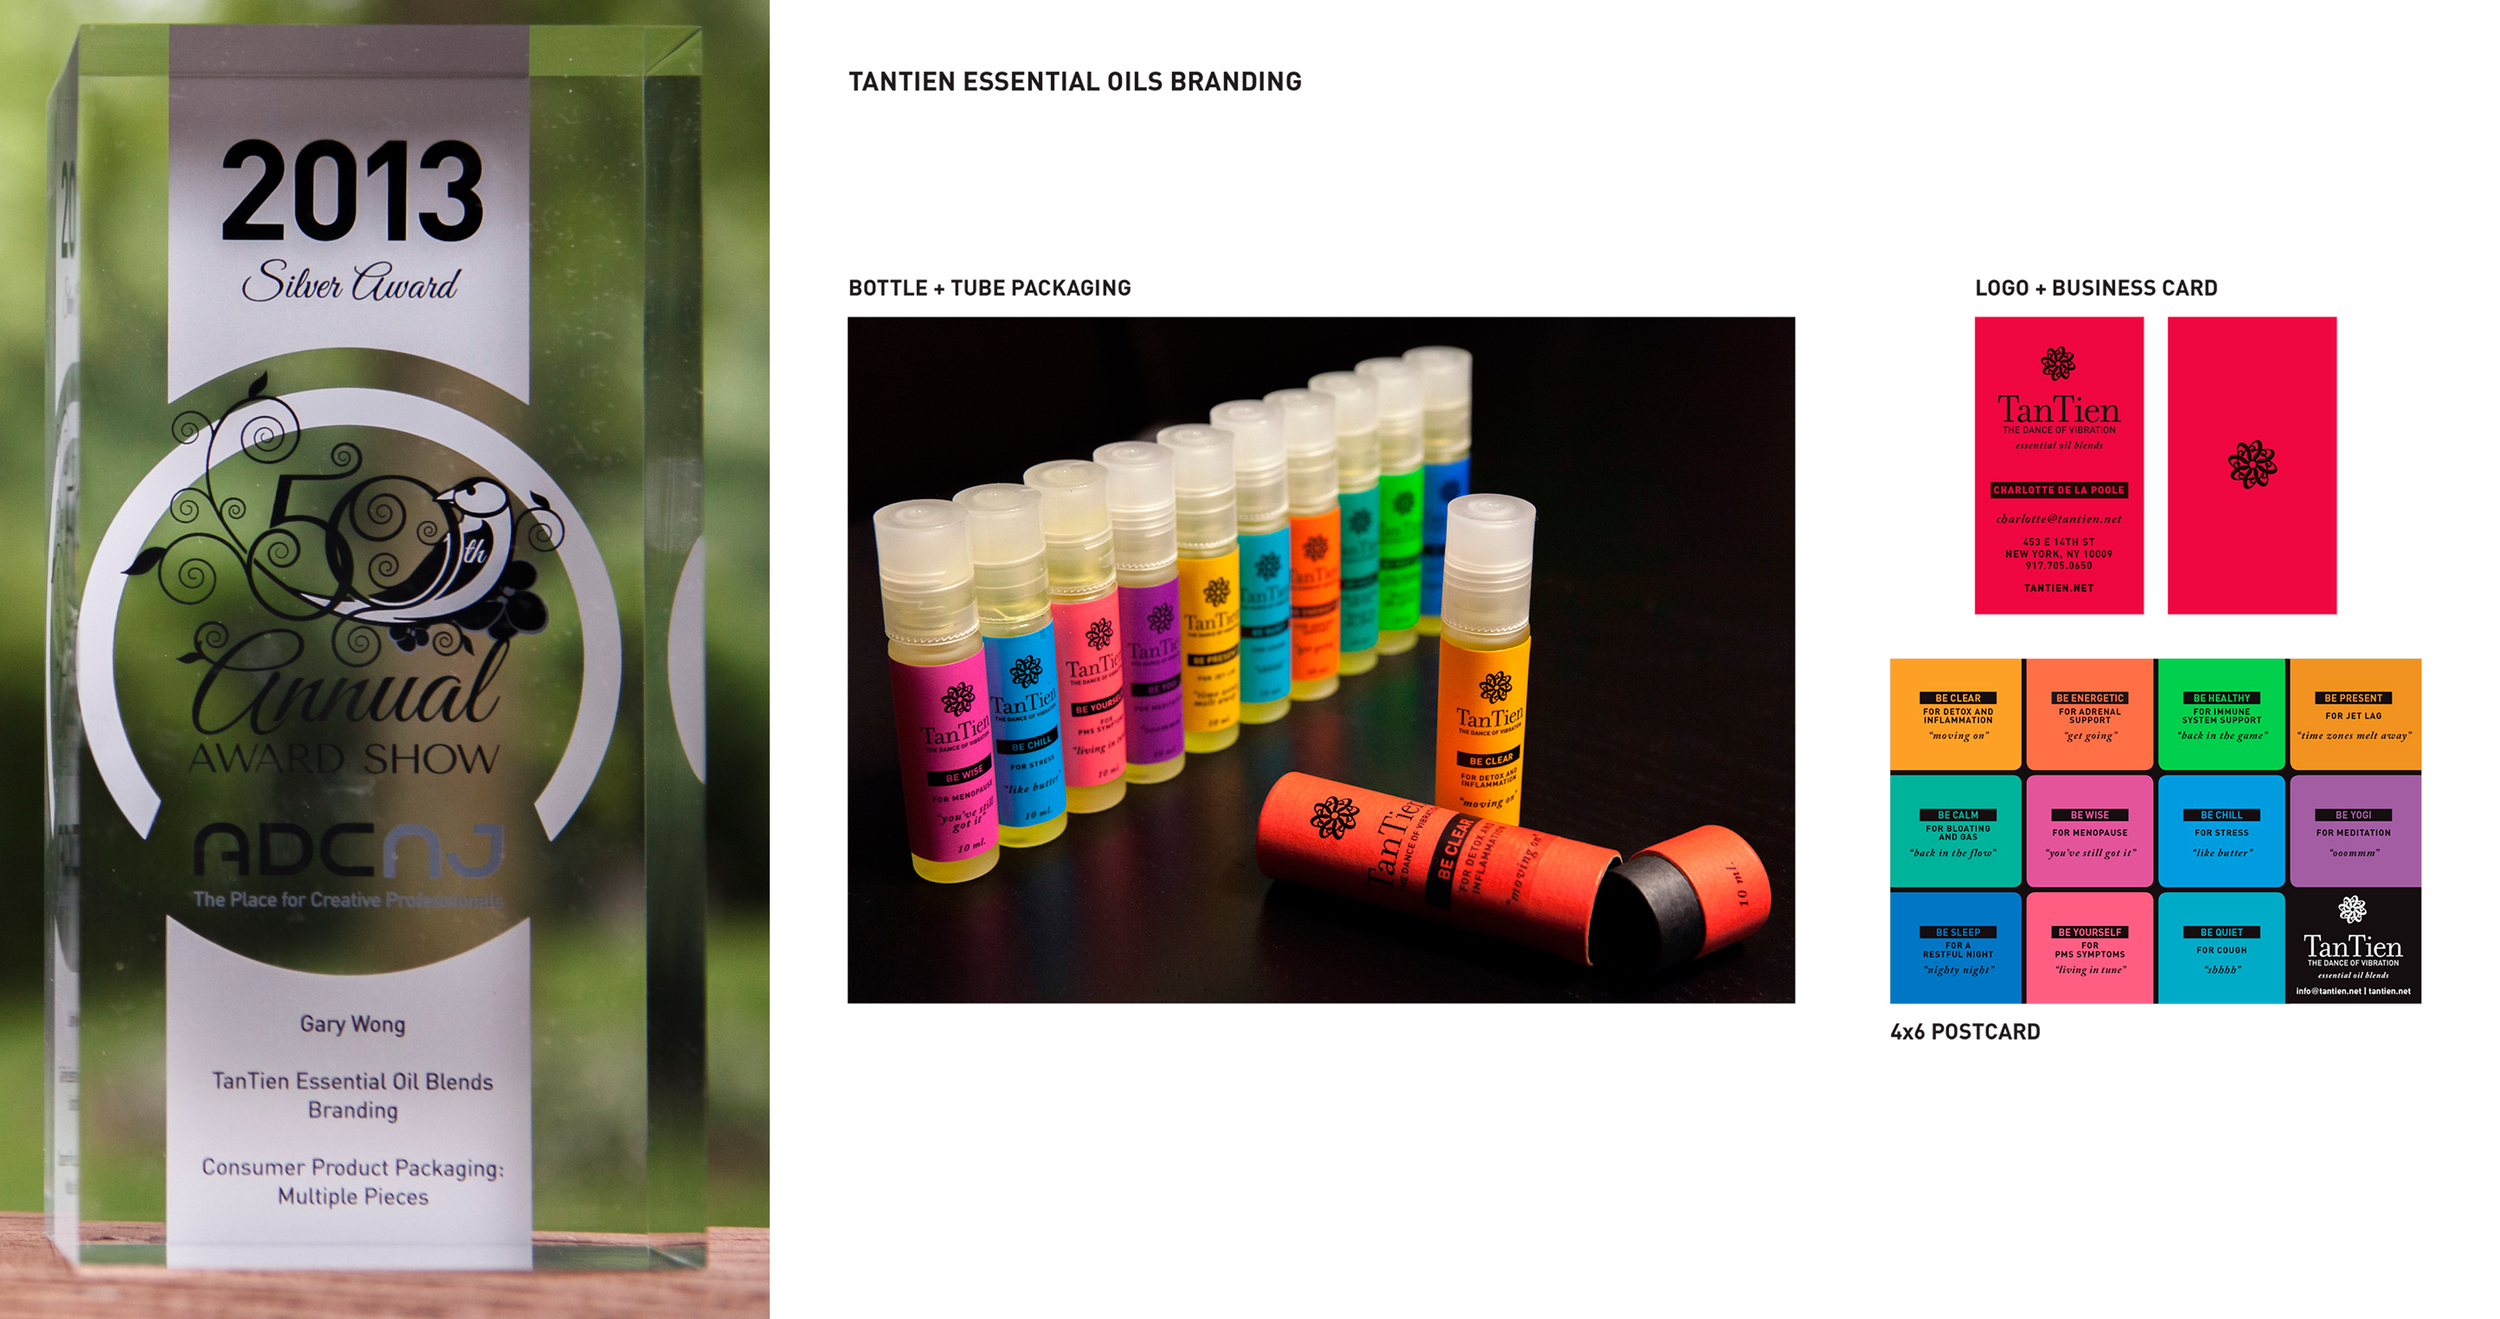 """TanTien Essential Oil Blends Branding takes a Silver in the category of """"Consumer Product Packaging: Multiple Pieces"""""""